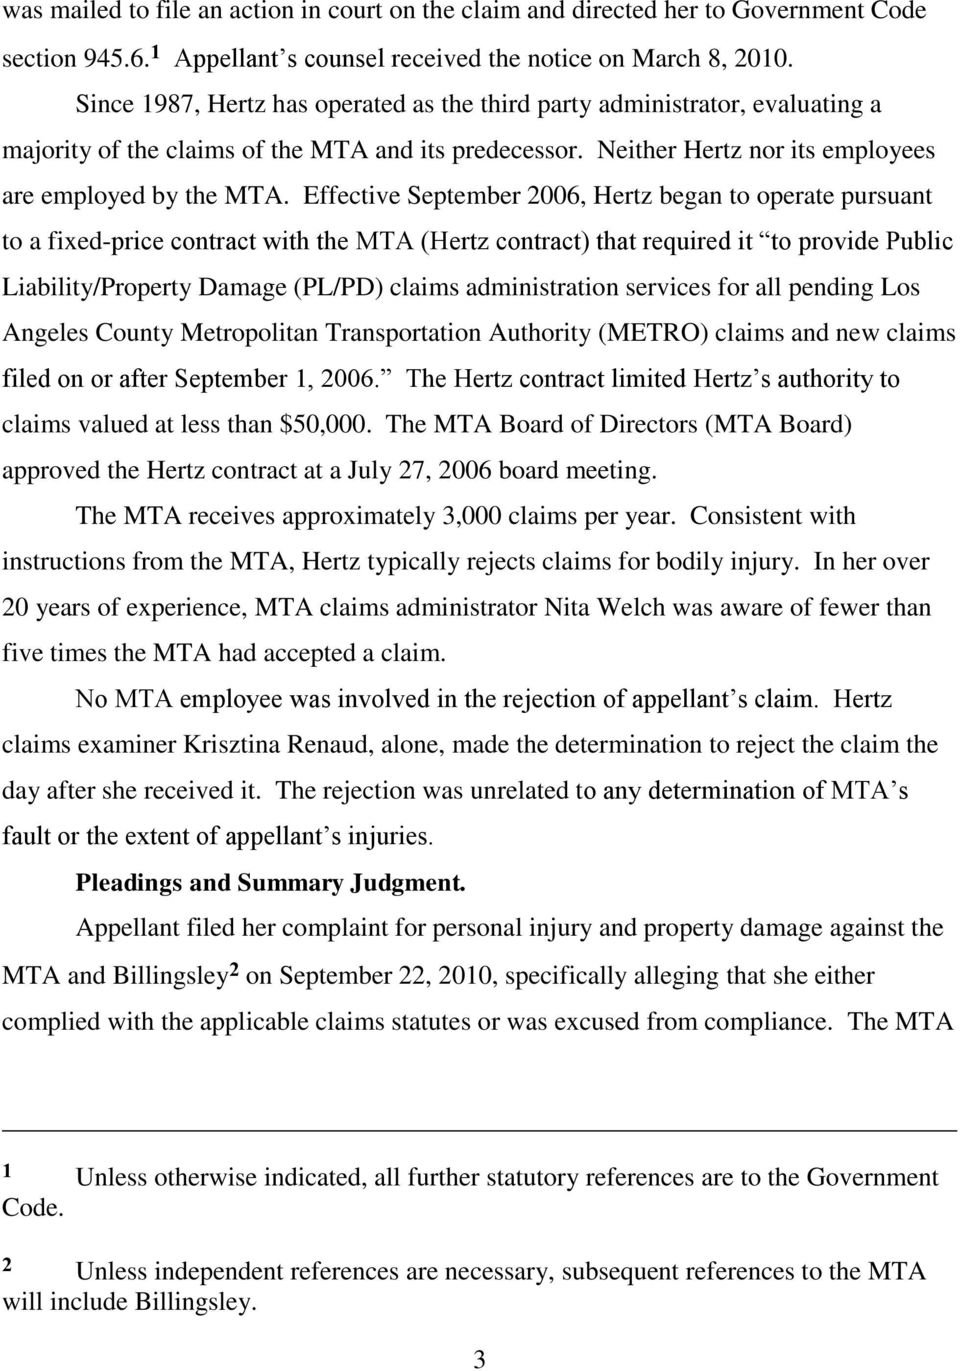 Effective September 2006, Hertz began to operate pursuant to a fixed-price contract with the MTA (Hertz contract) that required it to provide Public Liability/Property Damage (PL/PD) claims